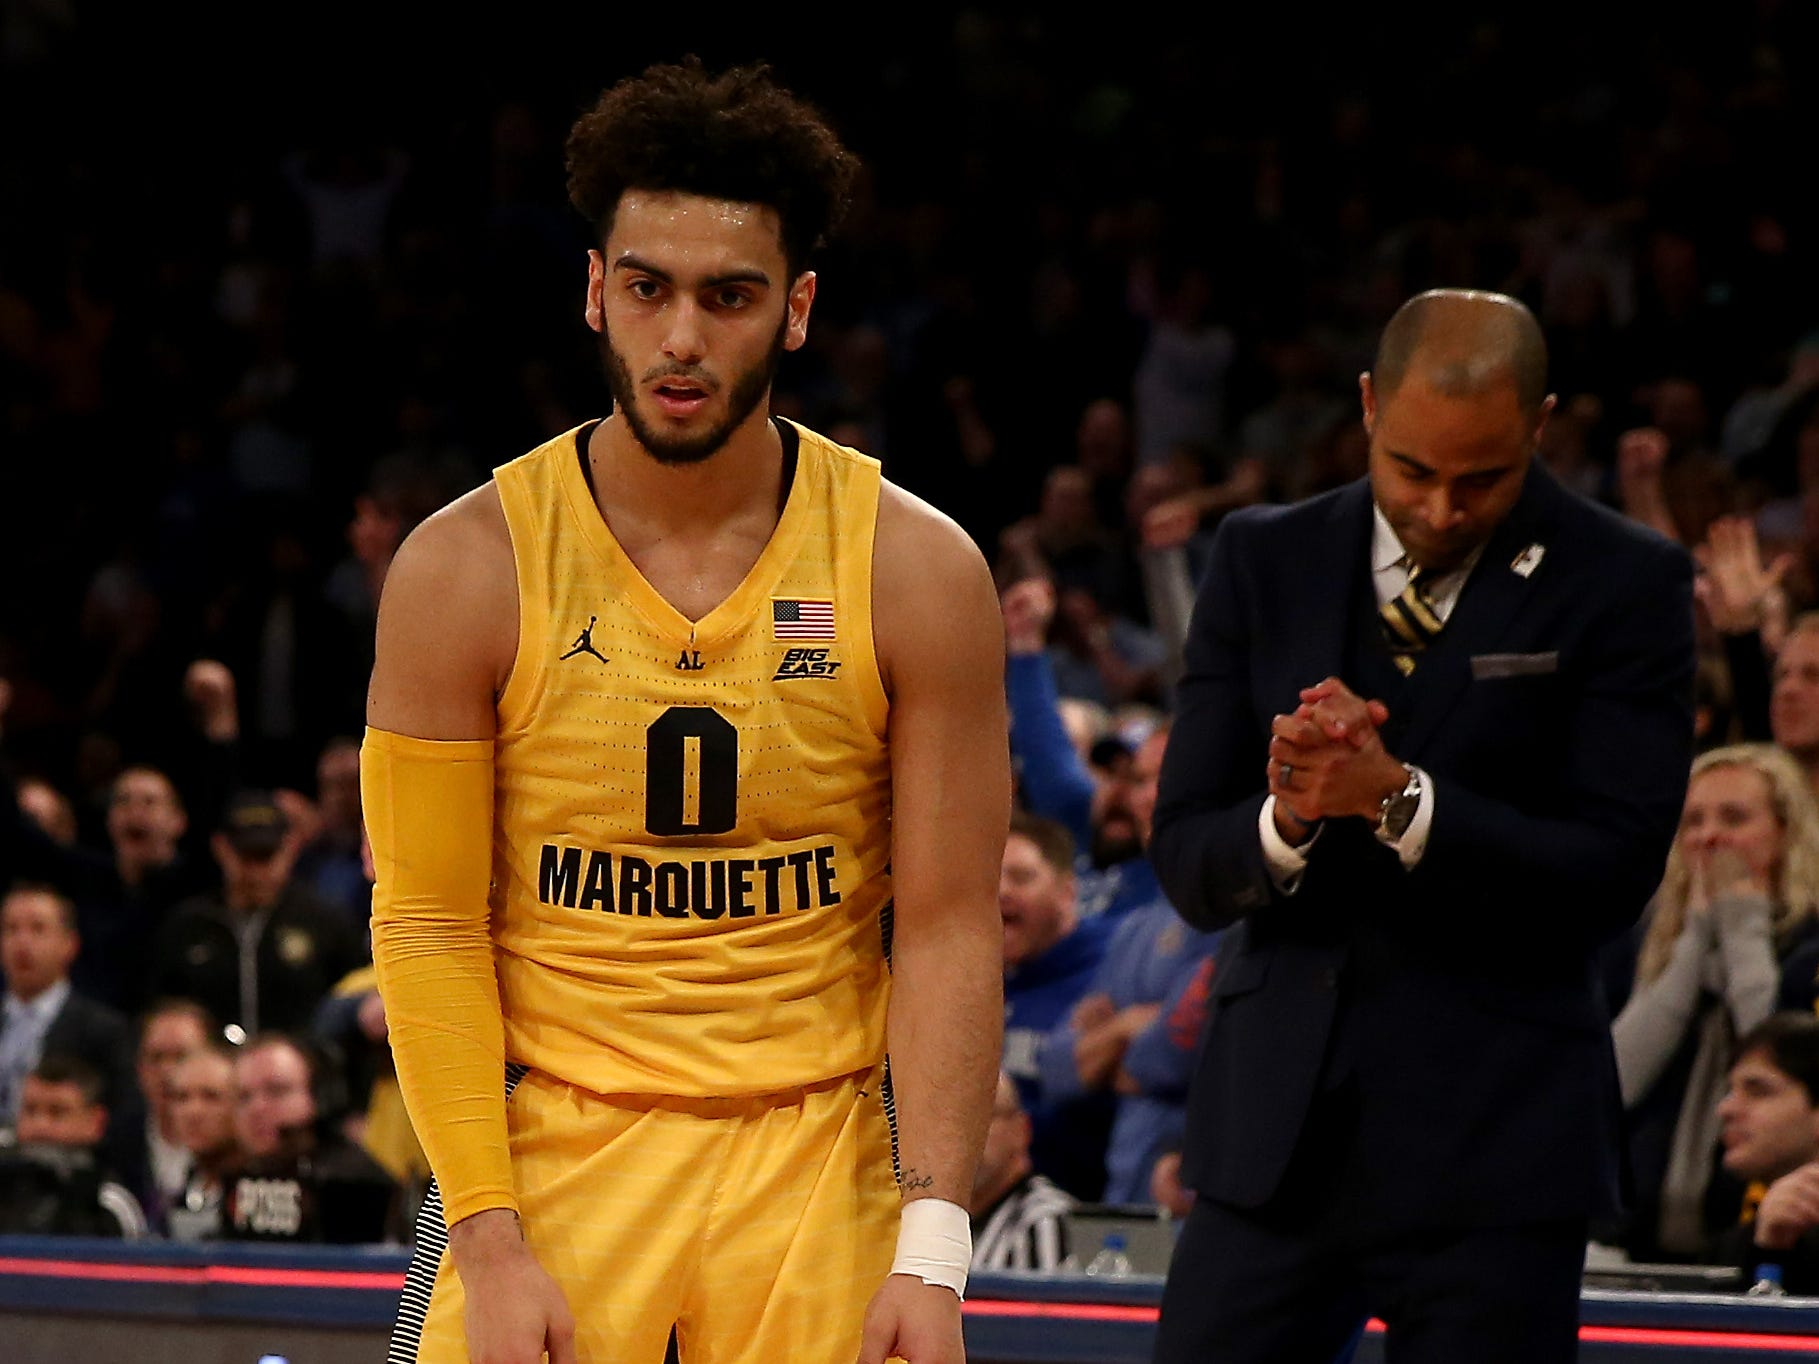 Markus Howard misses a shot in the final seconds and makes just 1 of 15 shots from the field on Friday night.